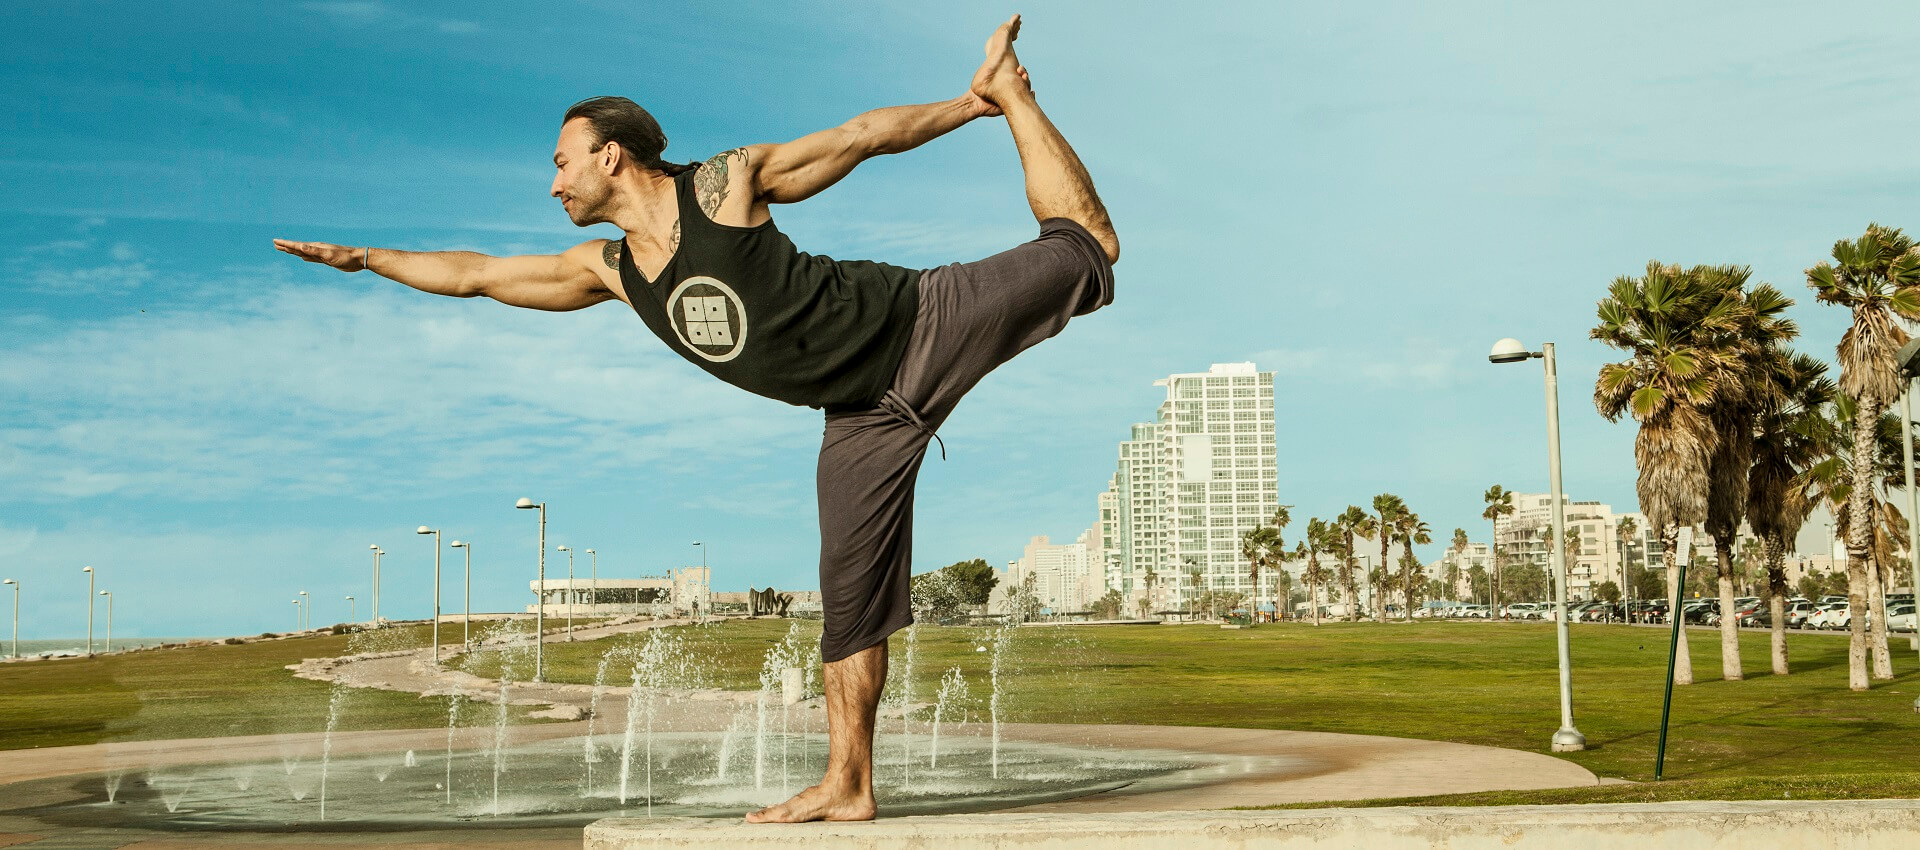 Eddy Toyonaga vinyasa yoga in dancers pose in the Tel Aviv